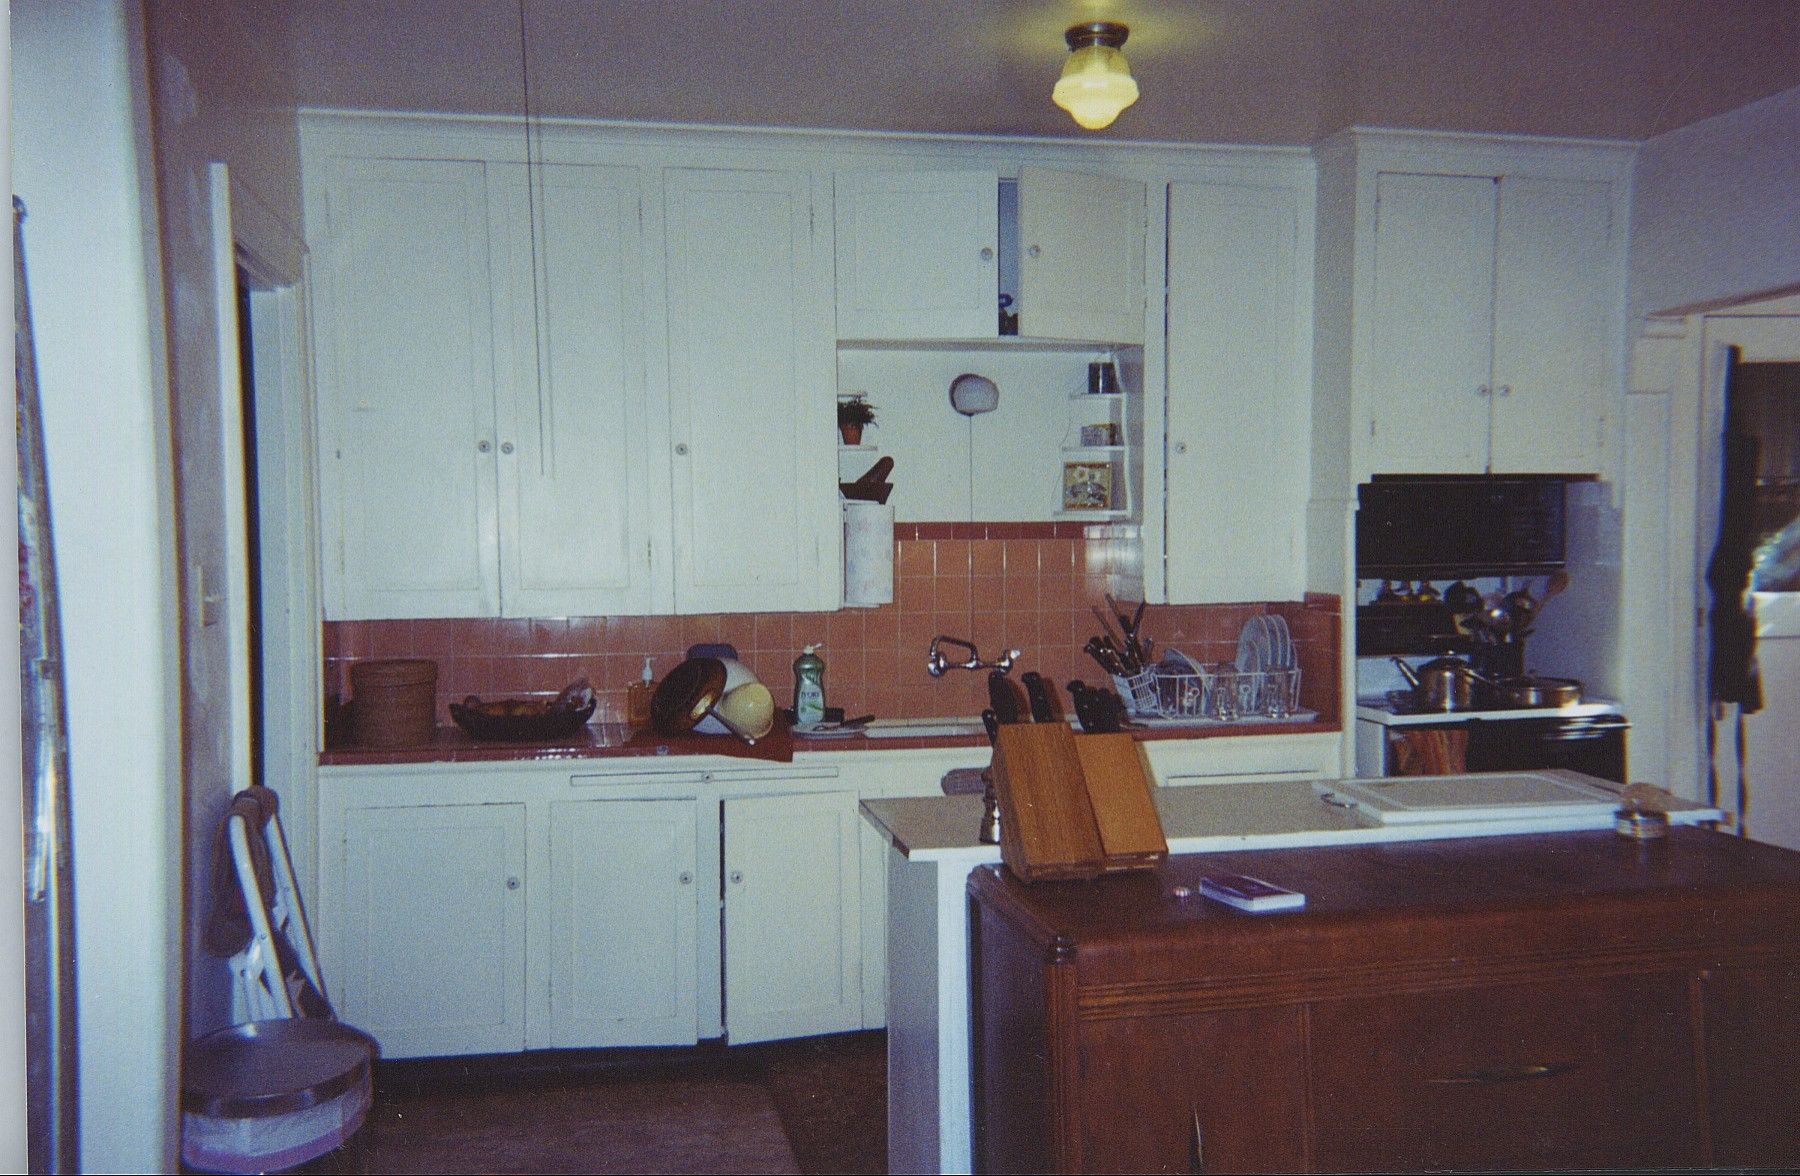 Wallingford Tudor Kitchen & Dining Room Remodel - Home Birth Year 1927